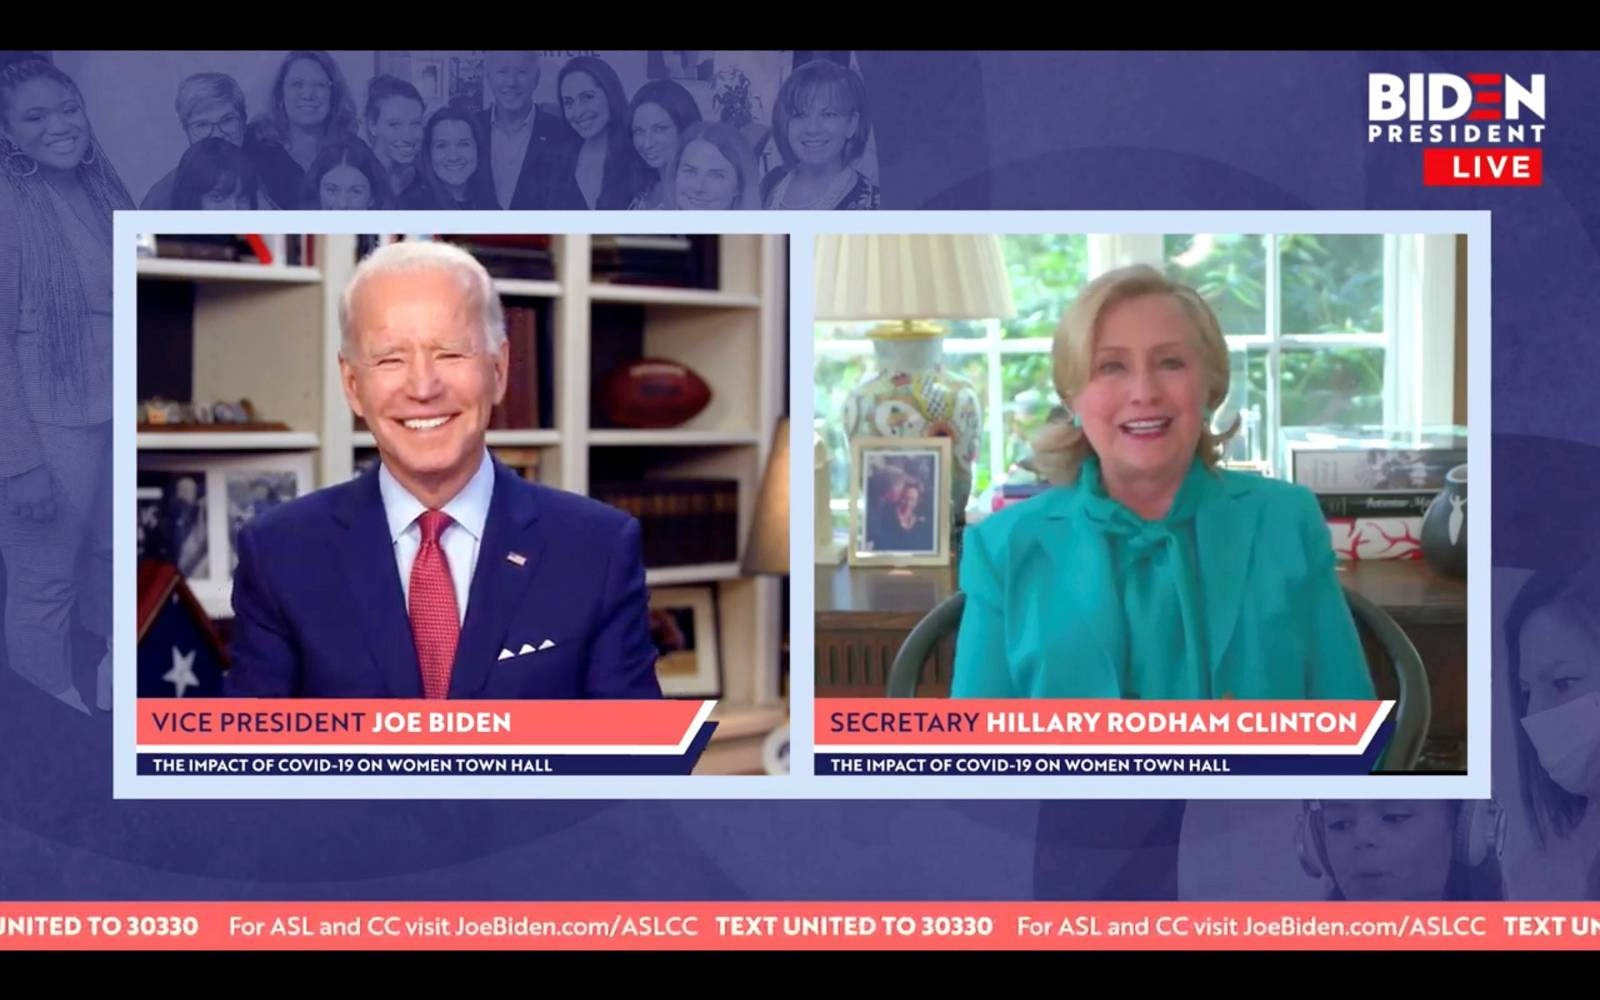 Democratic U.S. presidential candidate Joe Biden reacts as Hillary Clinton endorses him for president during online town hall